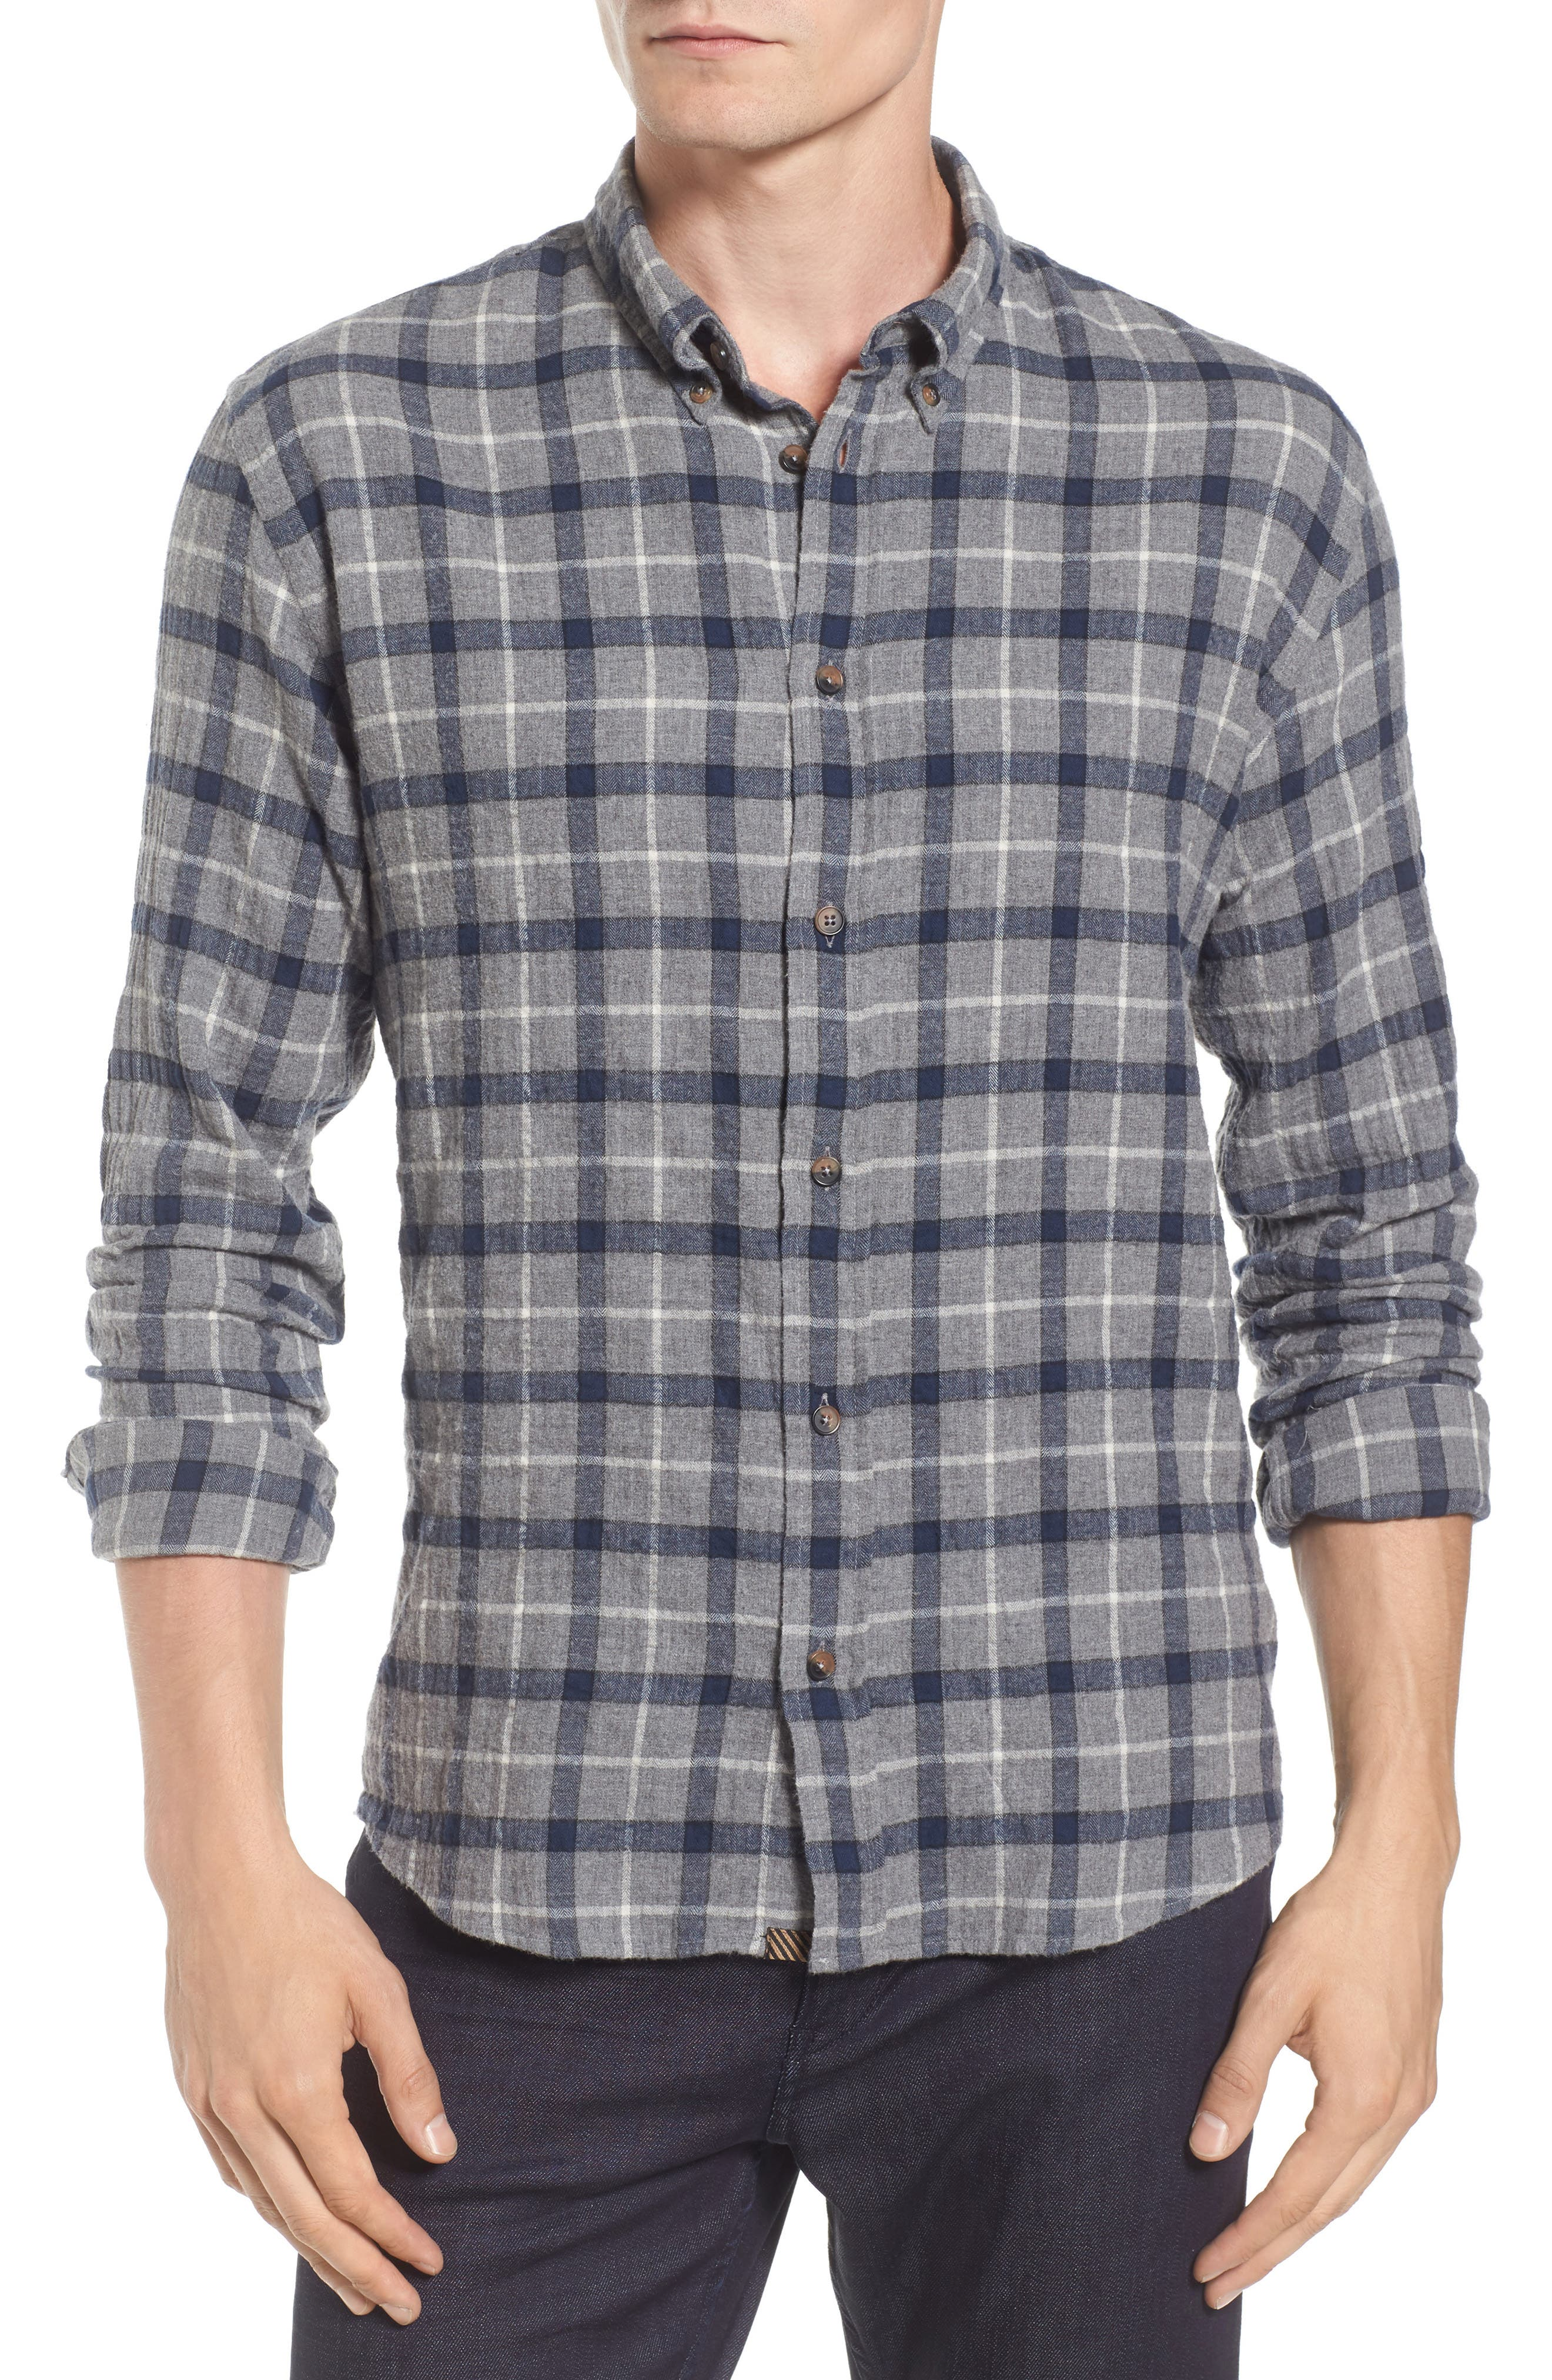 Murphy Slim Fit Plaid Sport Shirt,                             Main thumbnail 1, color,                             Grey/ Navy